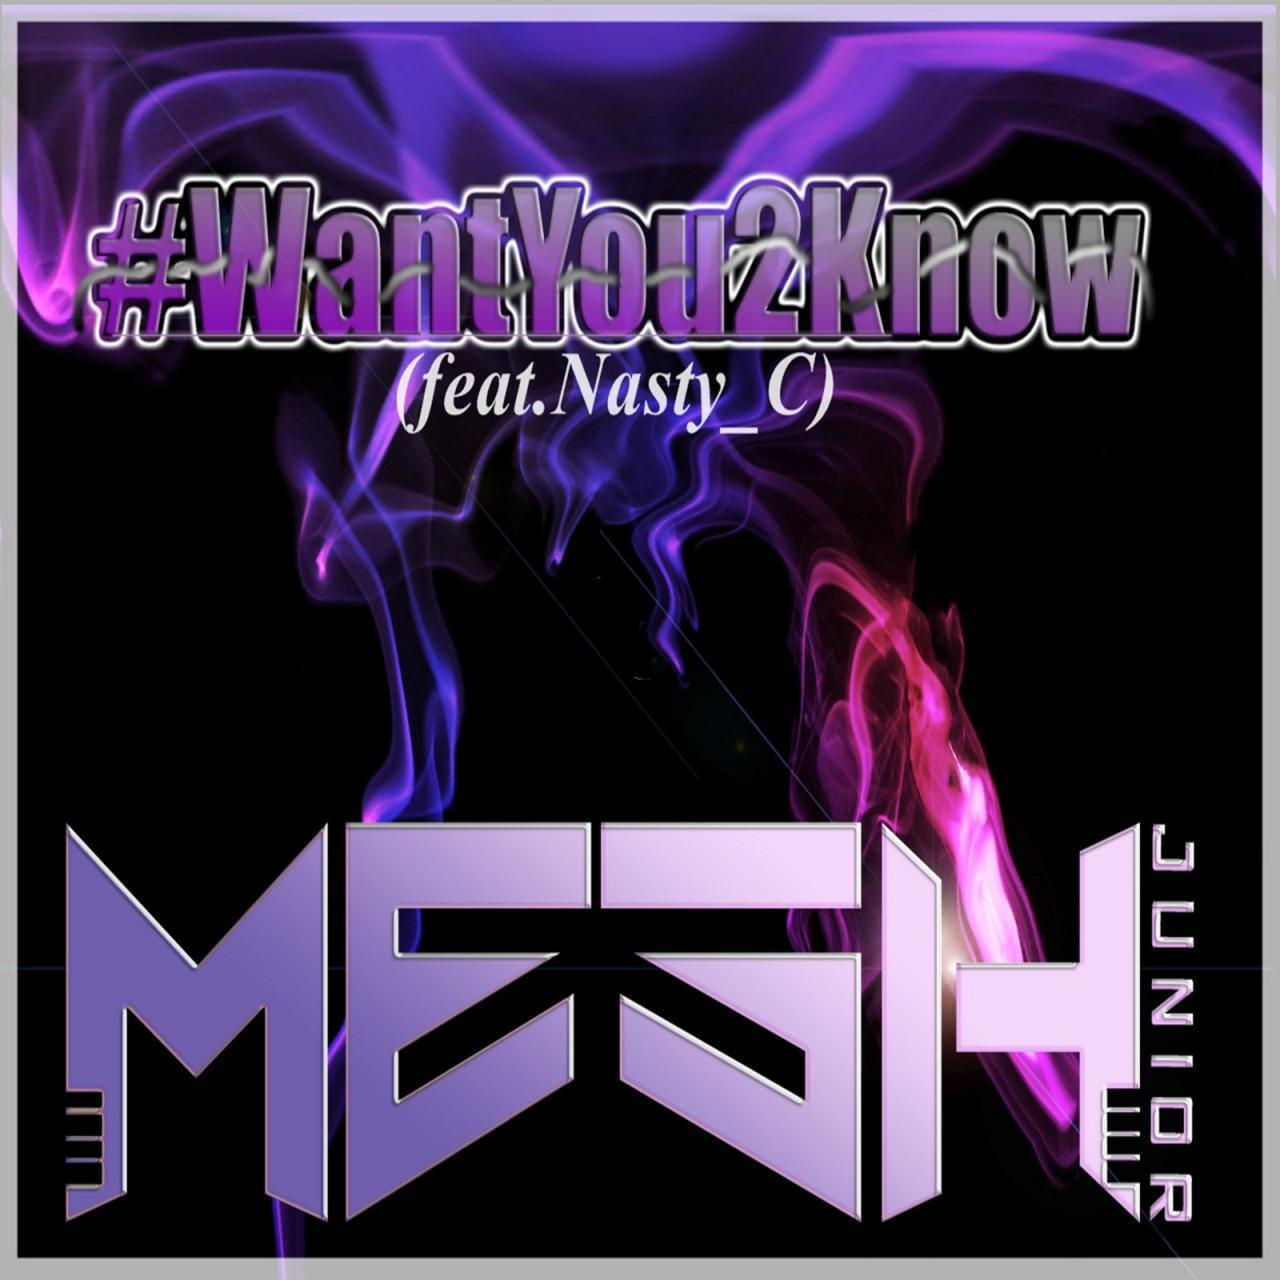 Mesh Junior Ft. Nasty C - Want You 2 Know